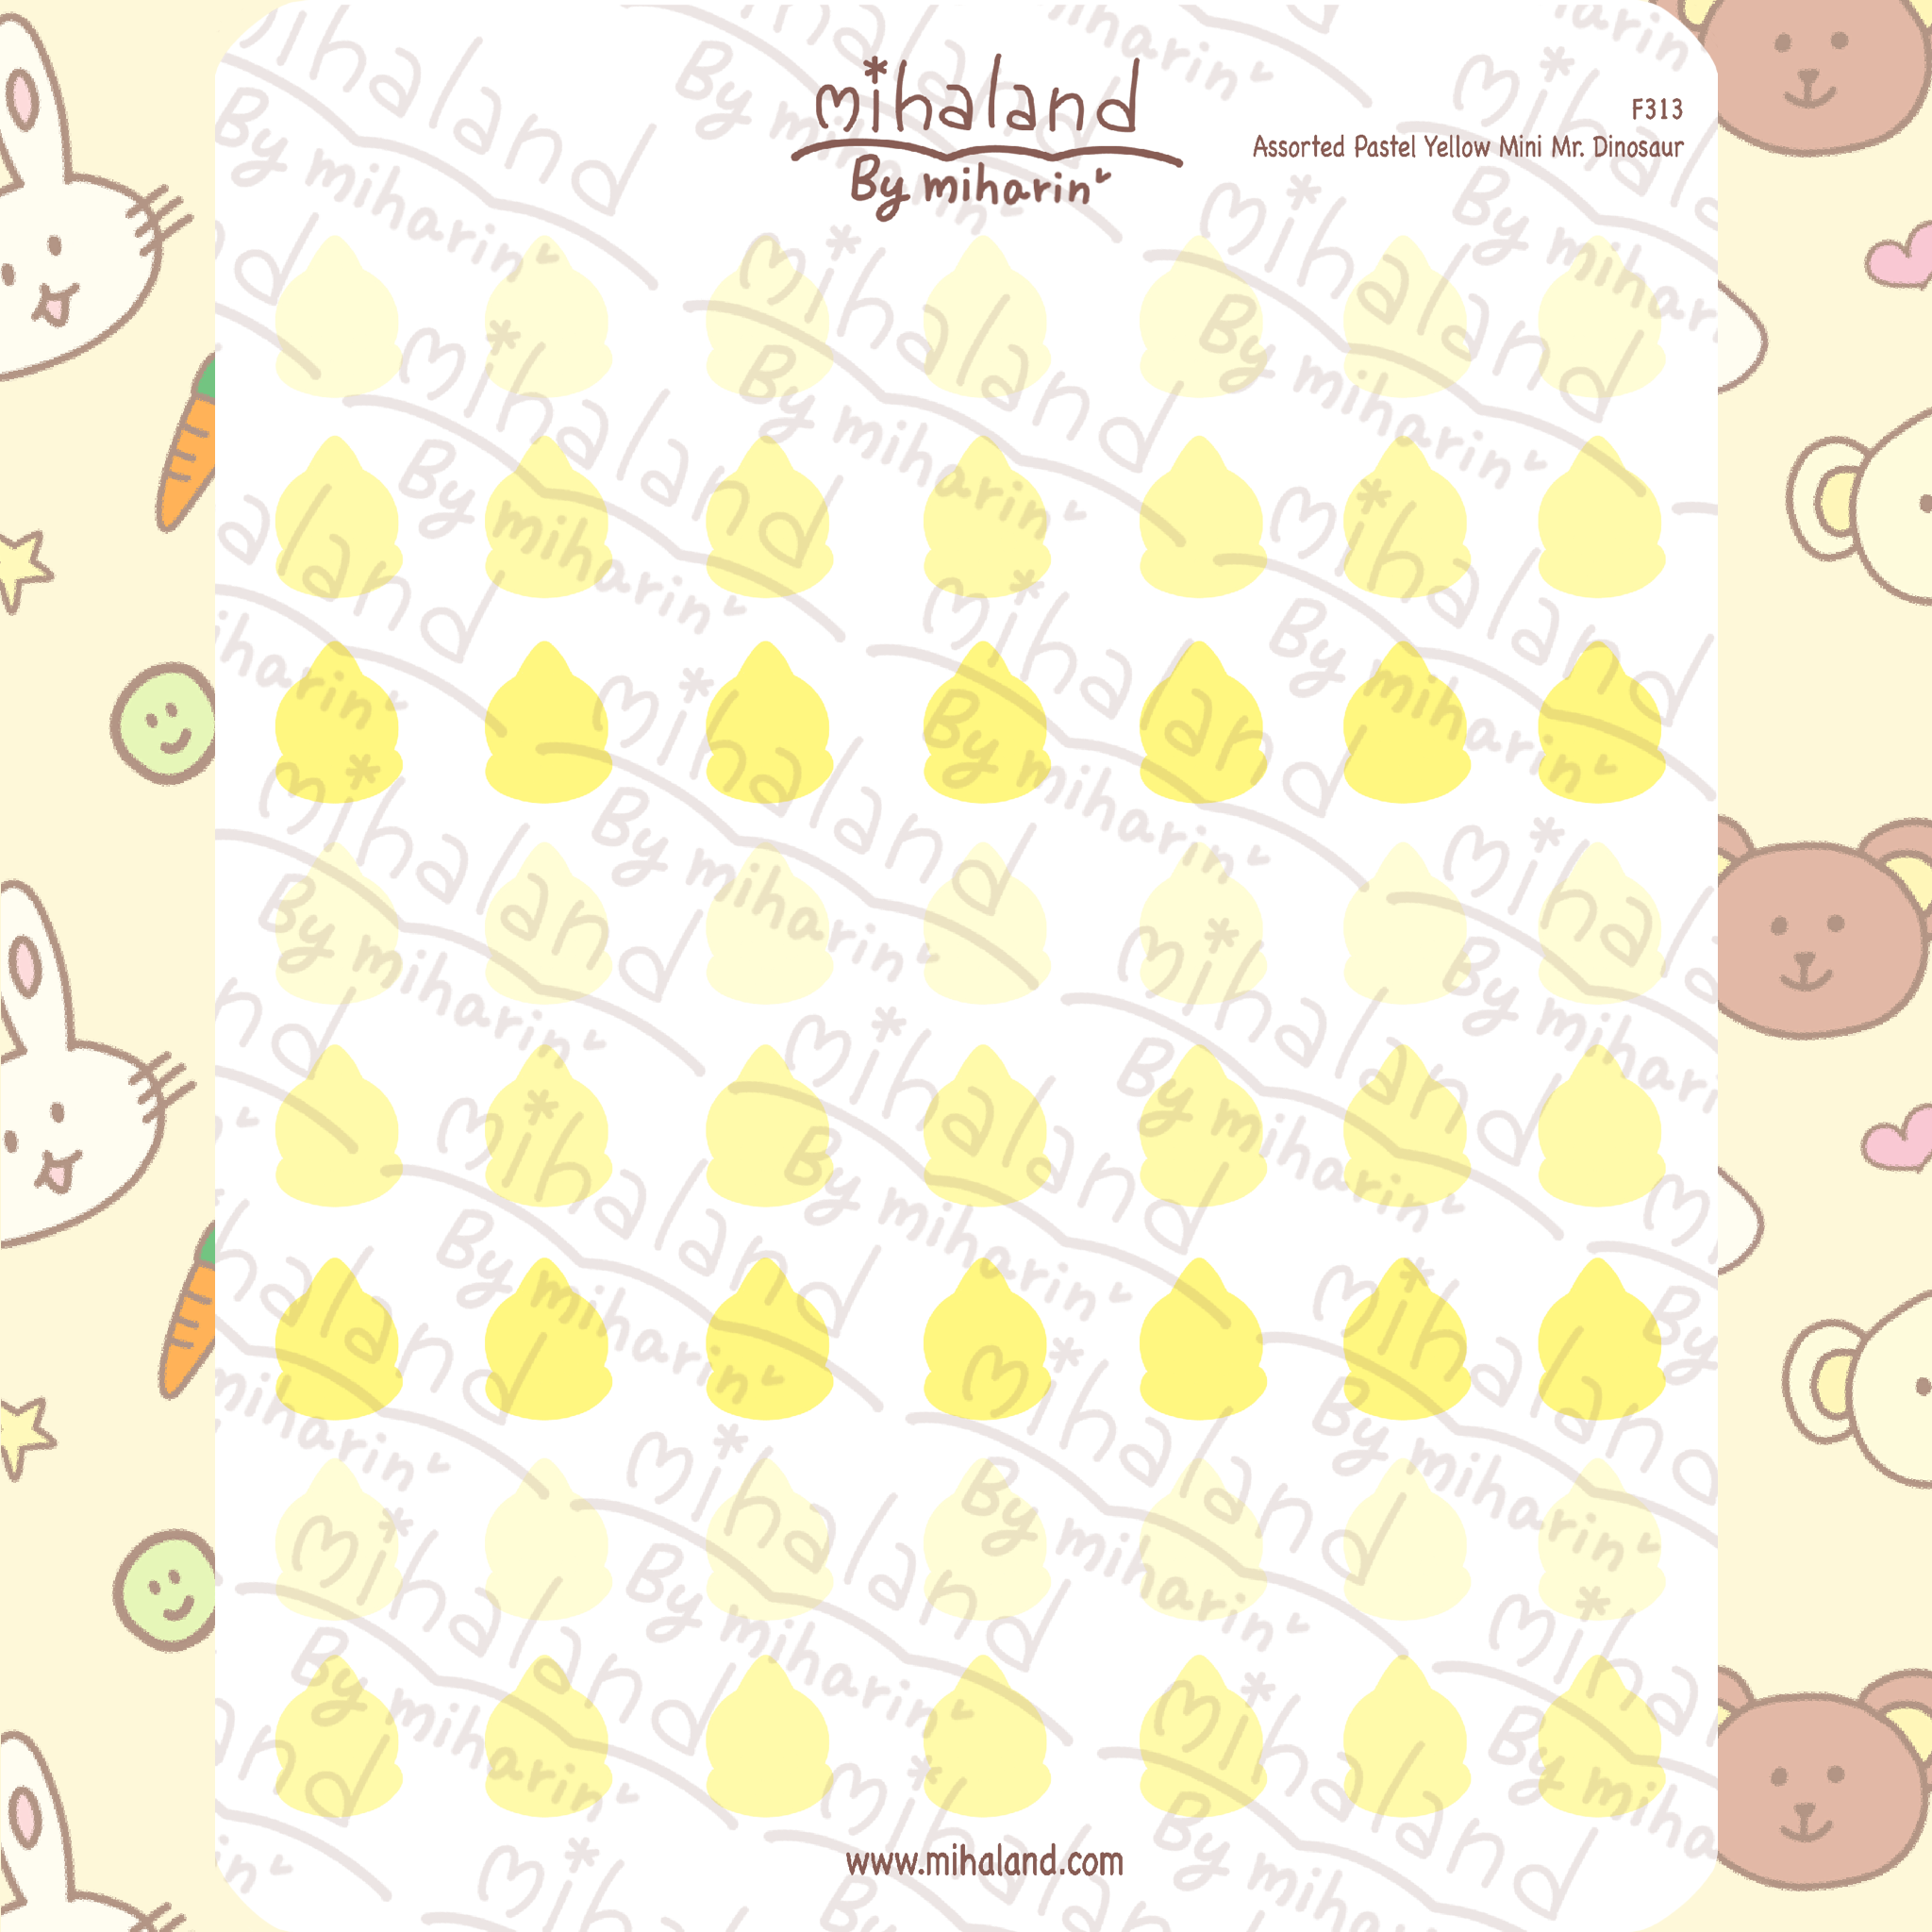 Assorted Pastel Yellow Mini Mr. Dinosaur Planner Stickers (F313)